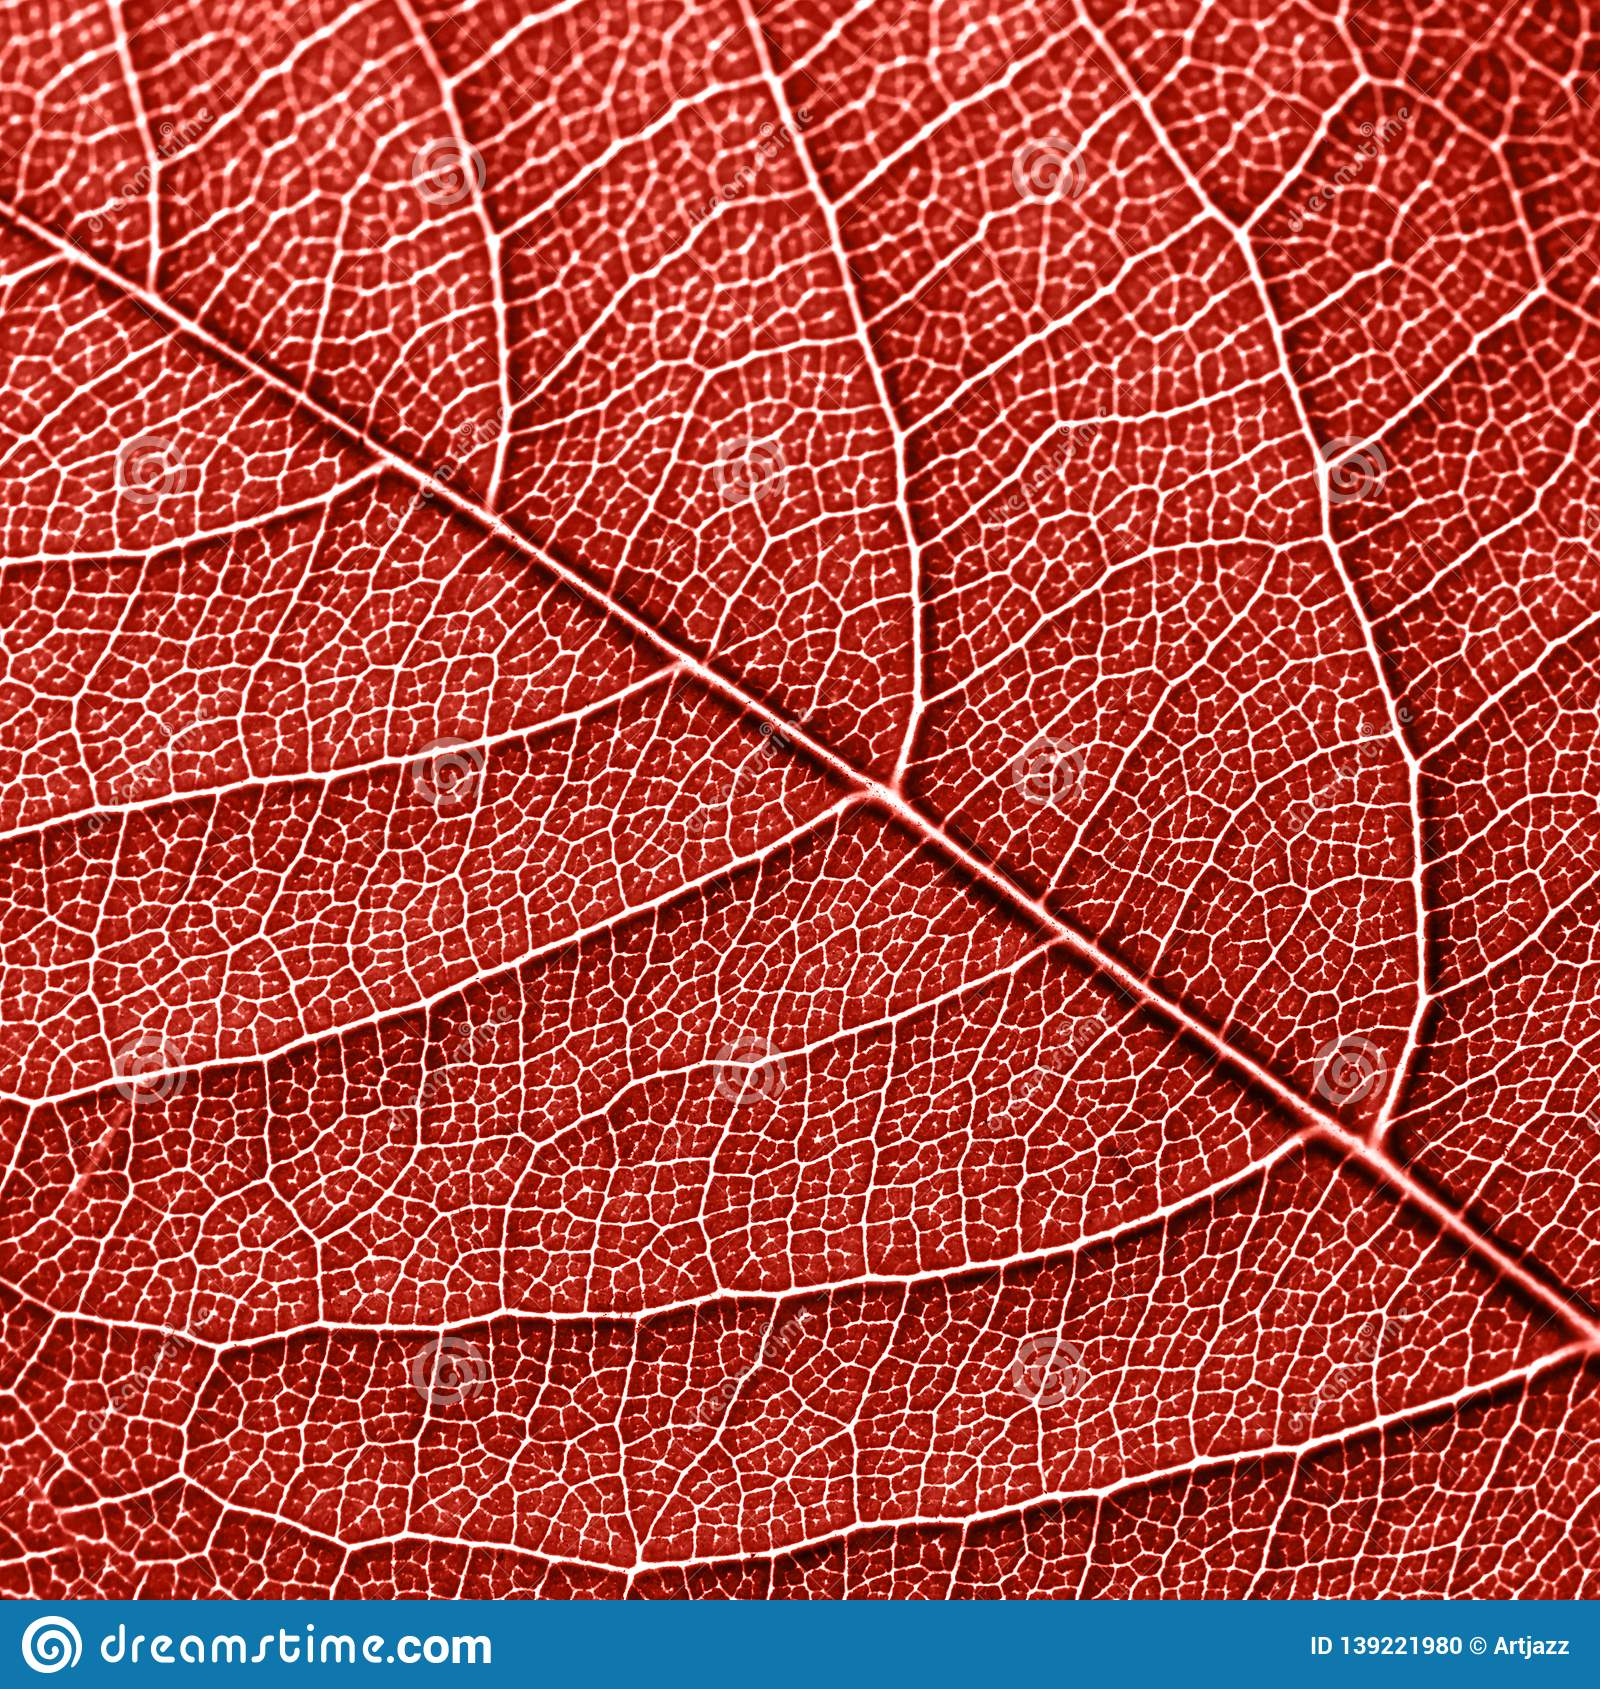 Texured natural veined leaf pattern background for layout in a color of the year 2019 Living Coral. Macro photo. Top